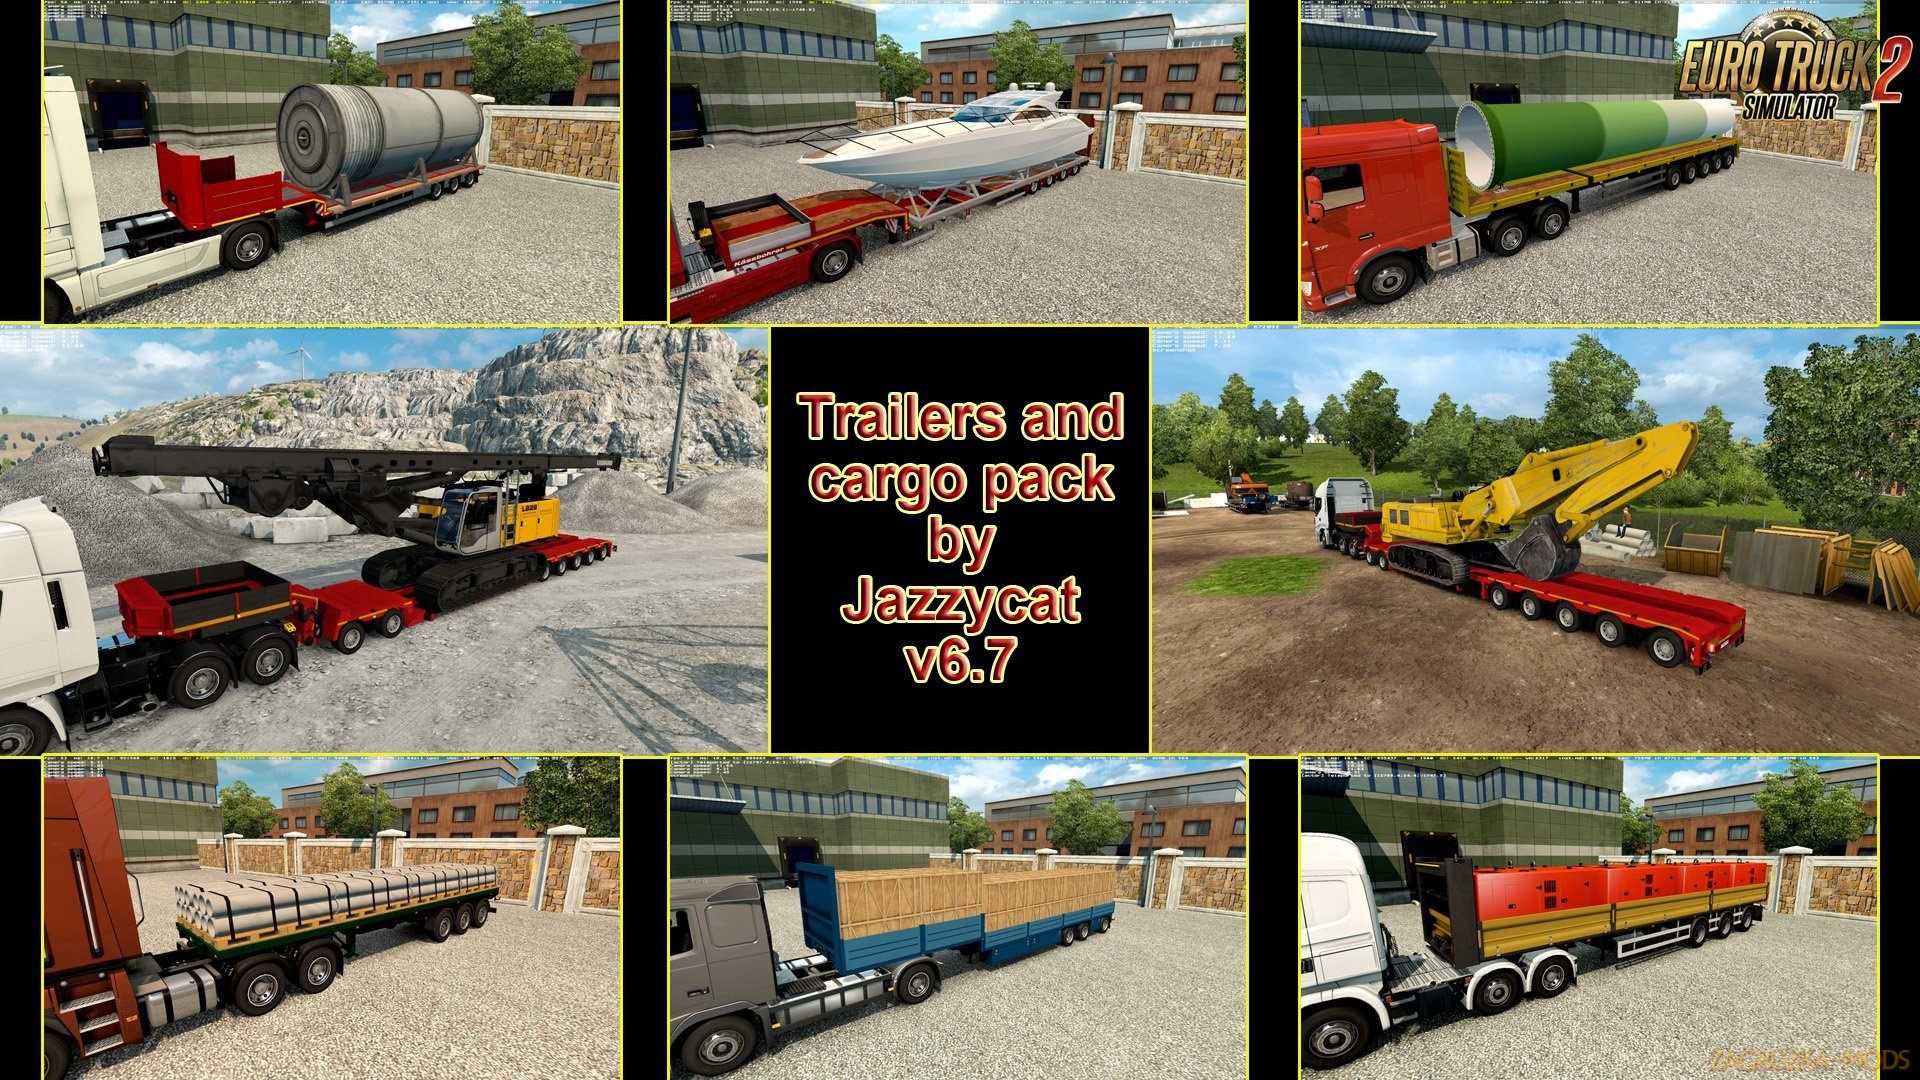 Trailers and Cargo Pack v6.7 by Jazzycat